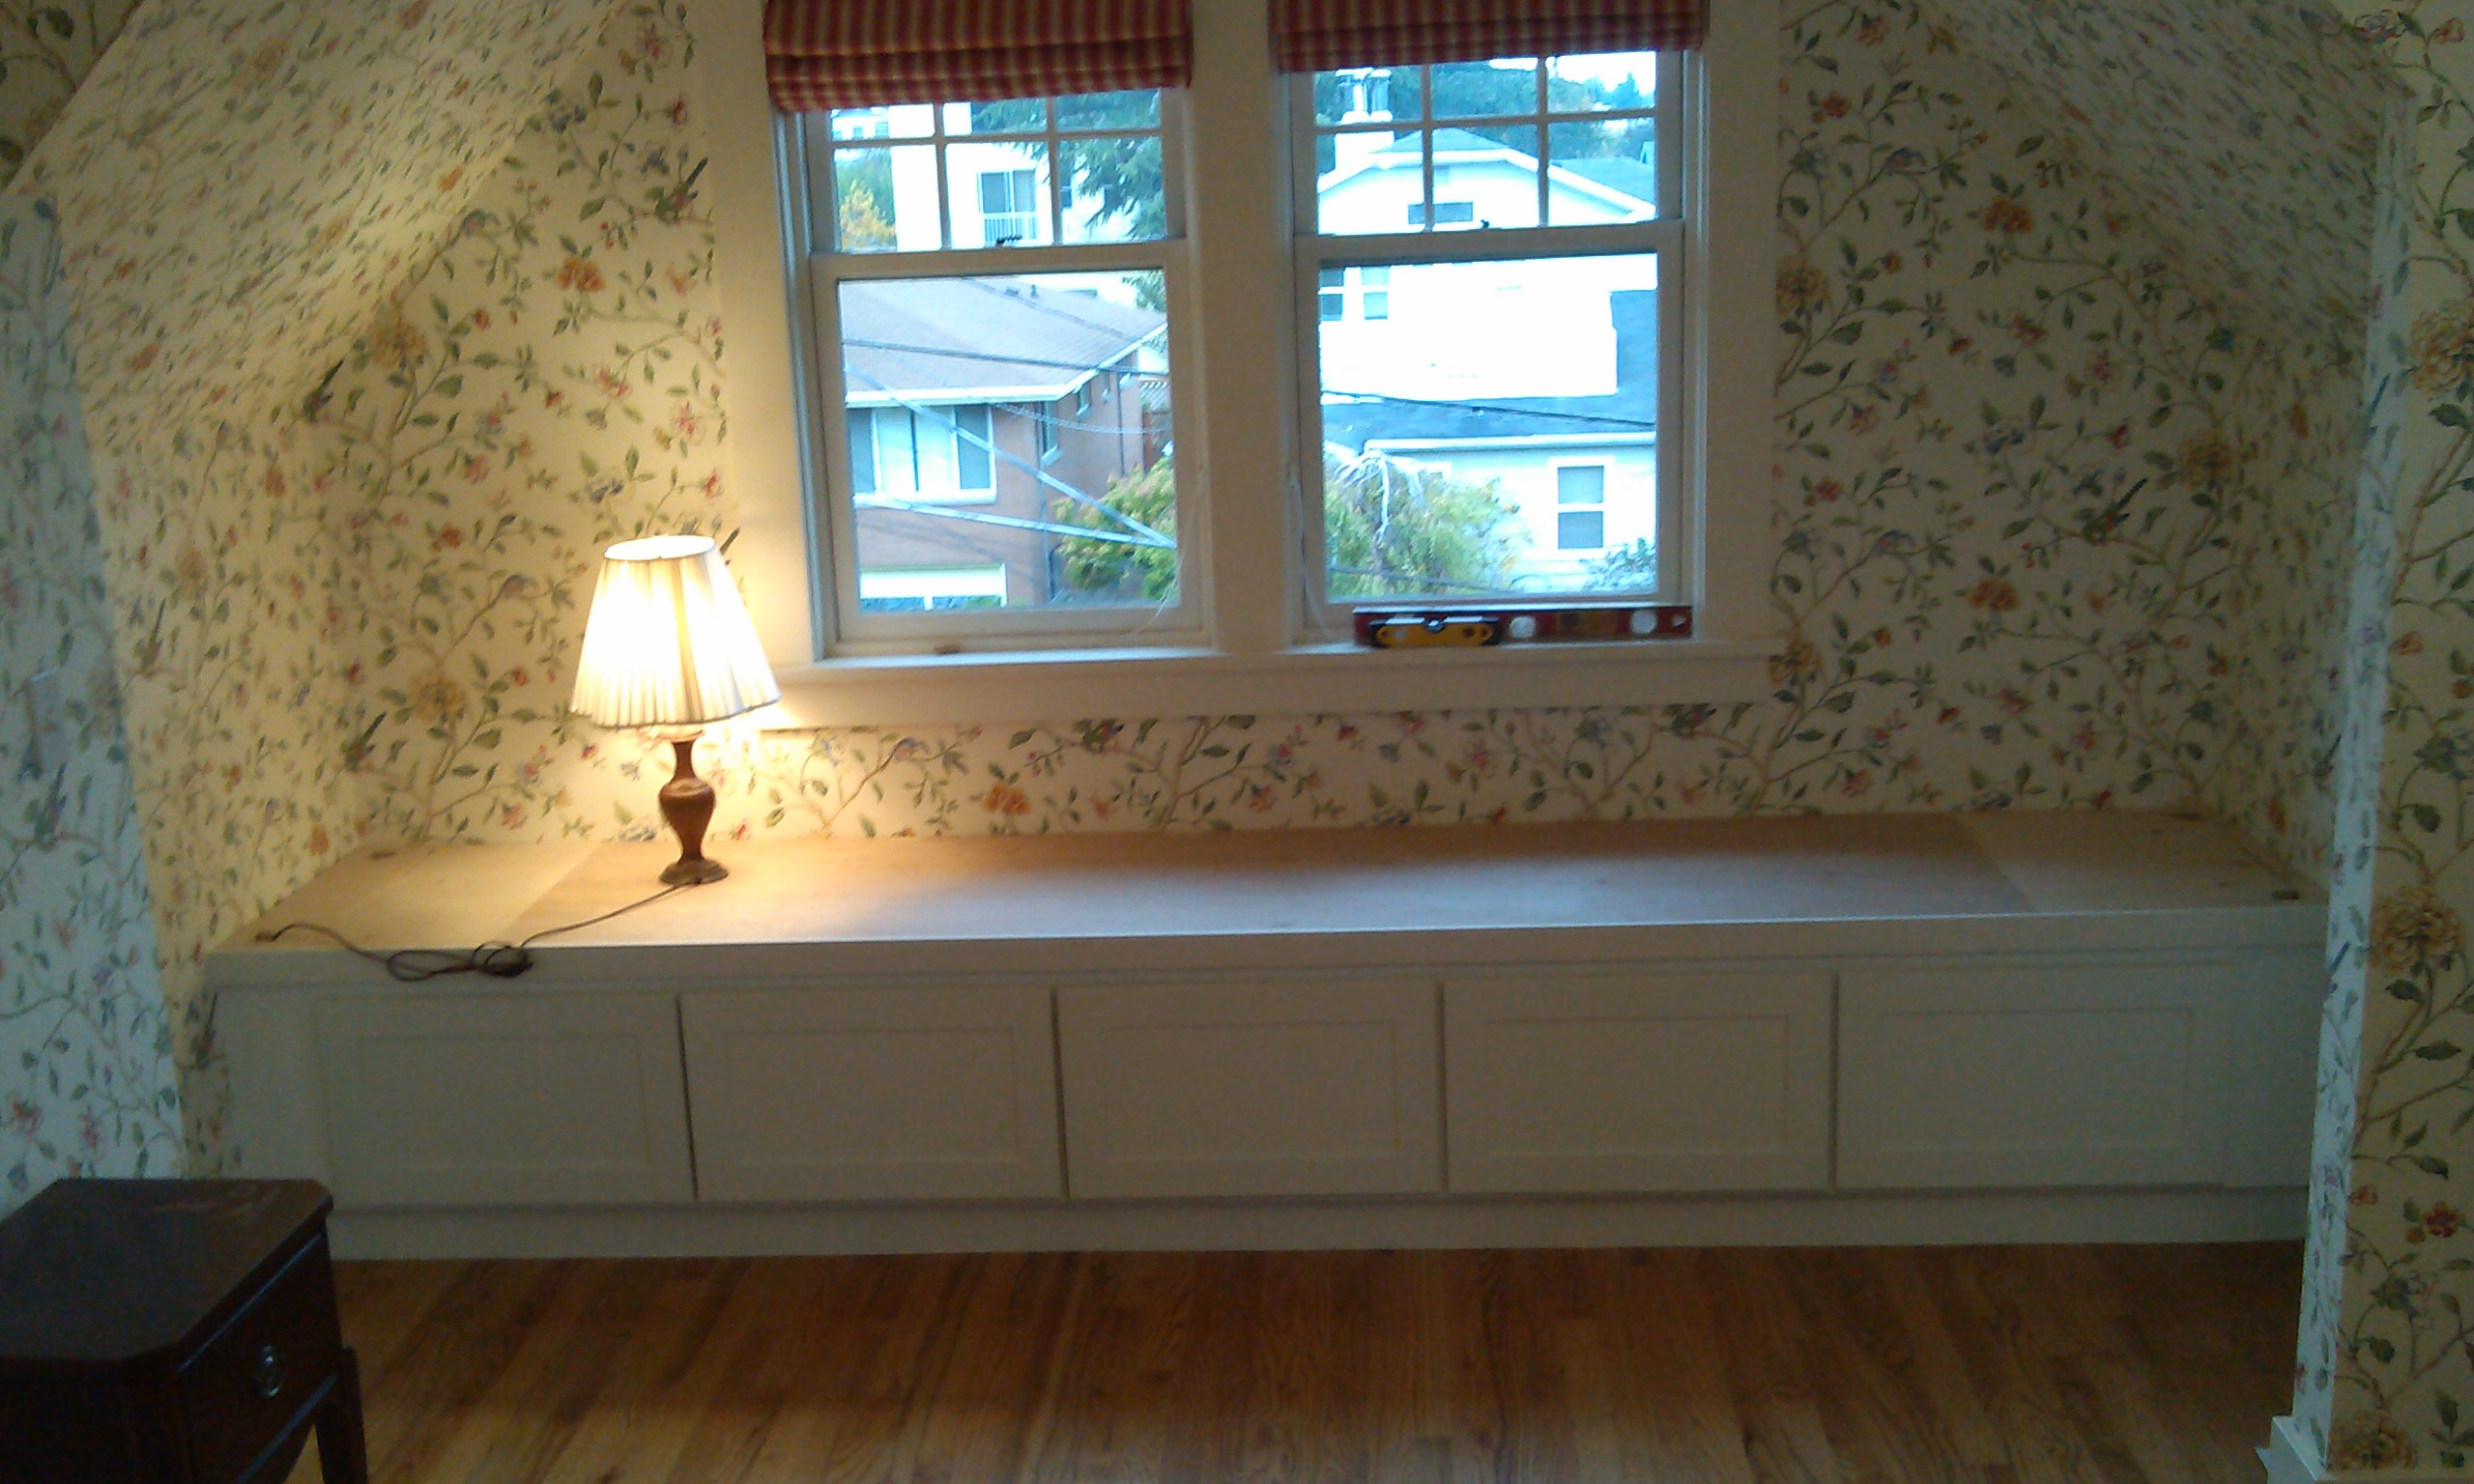 How To Build A Window Bench Seat With Storage Plans how to make strong ...